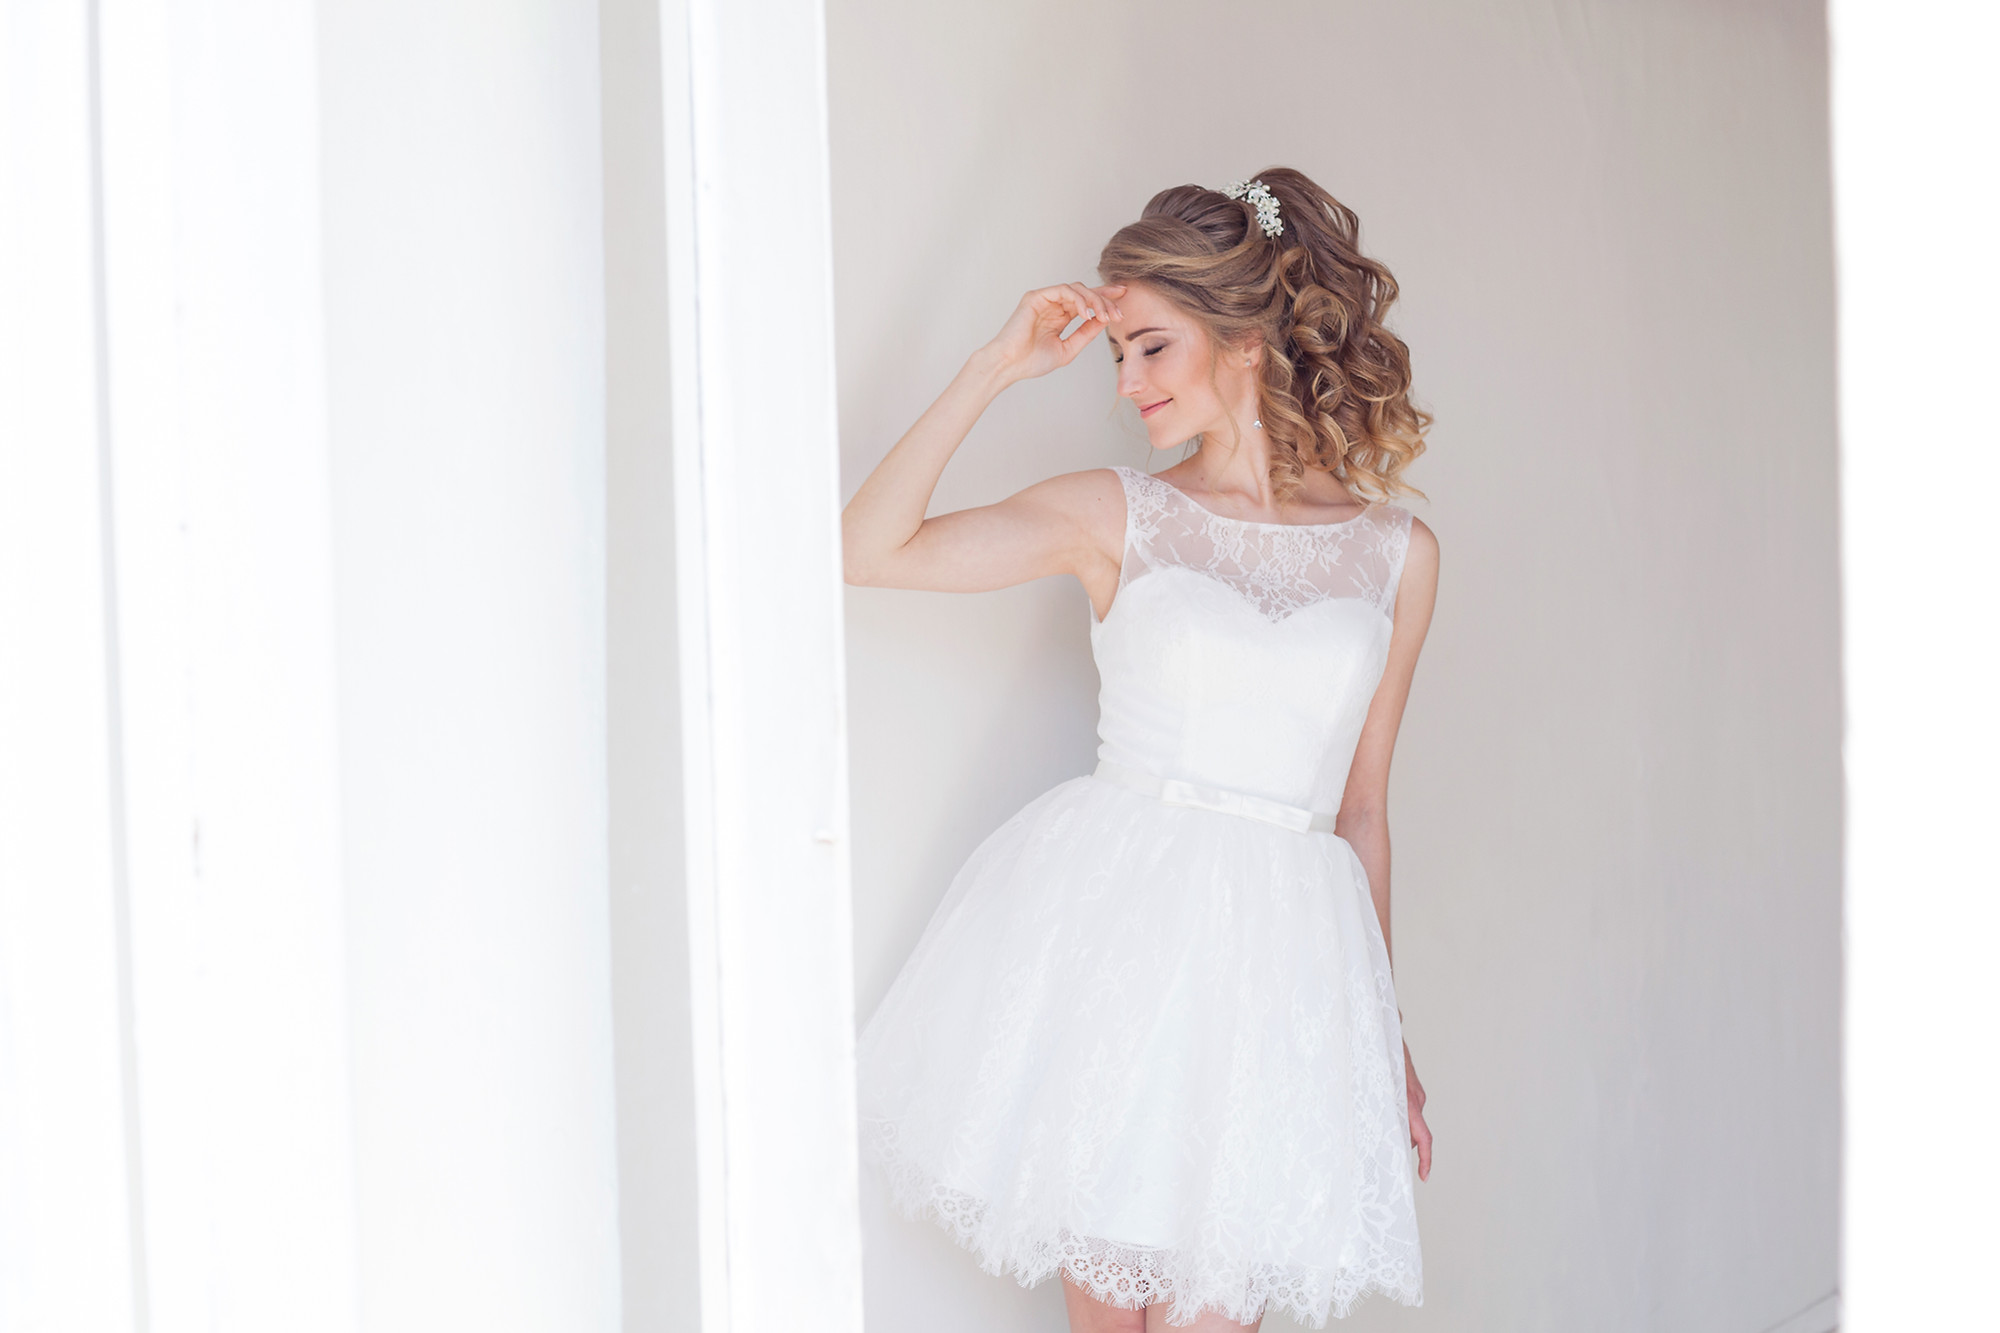 Tips To Find A Wedding Dress On A Budget